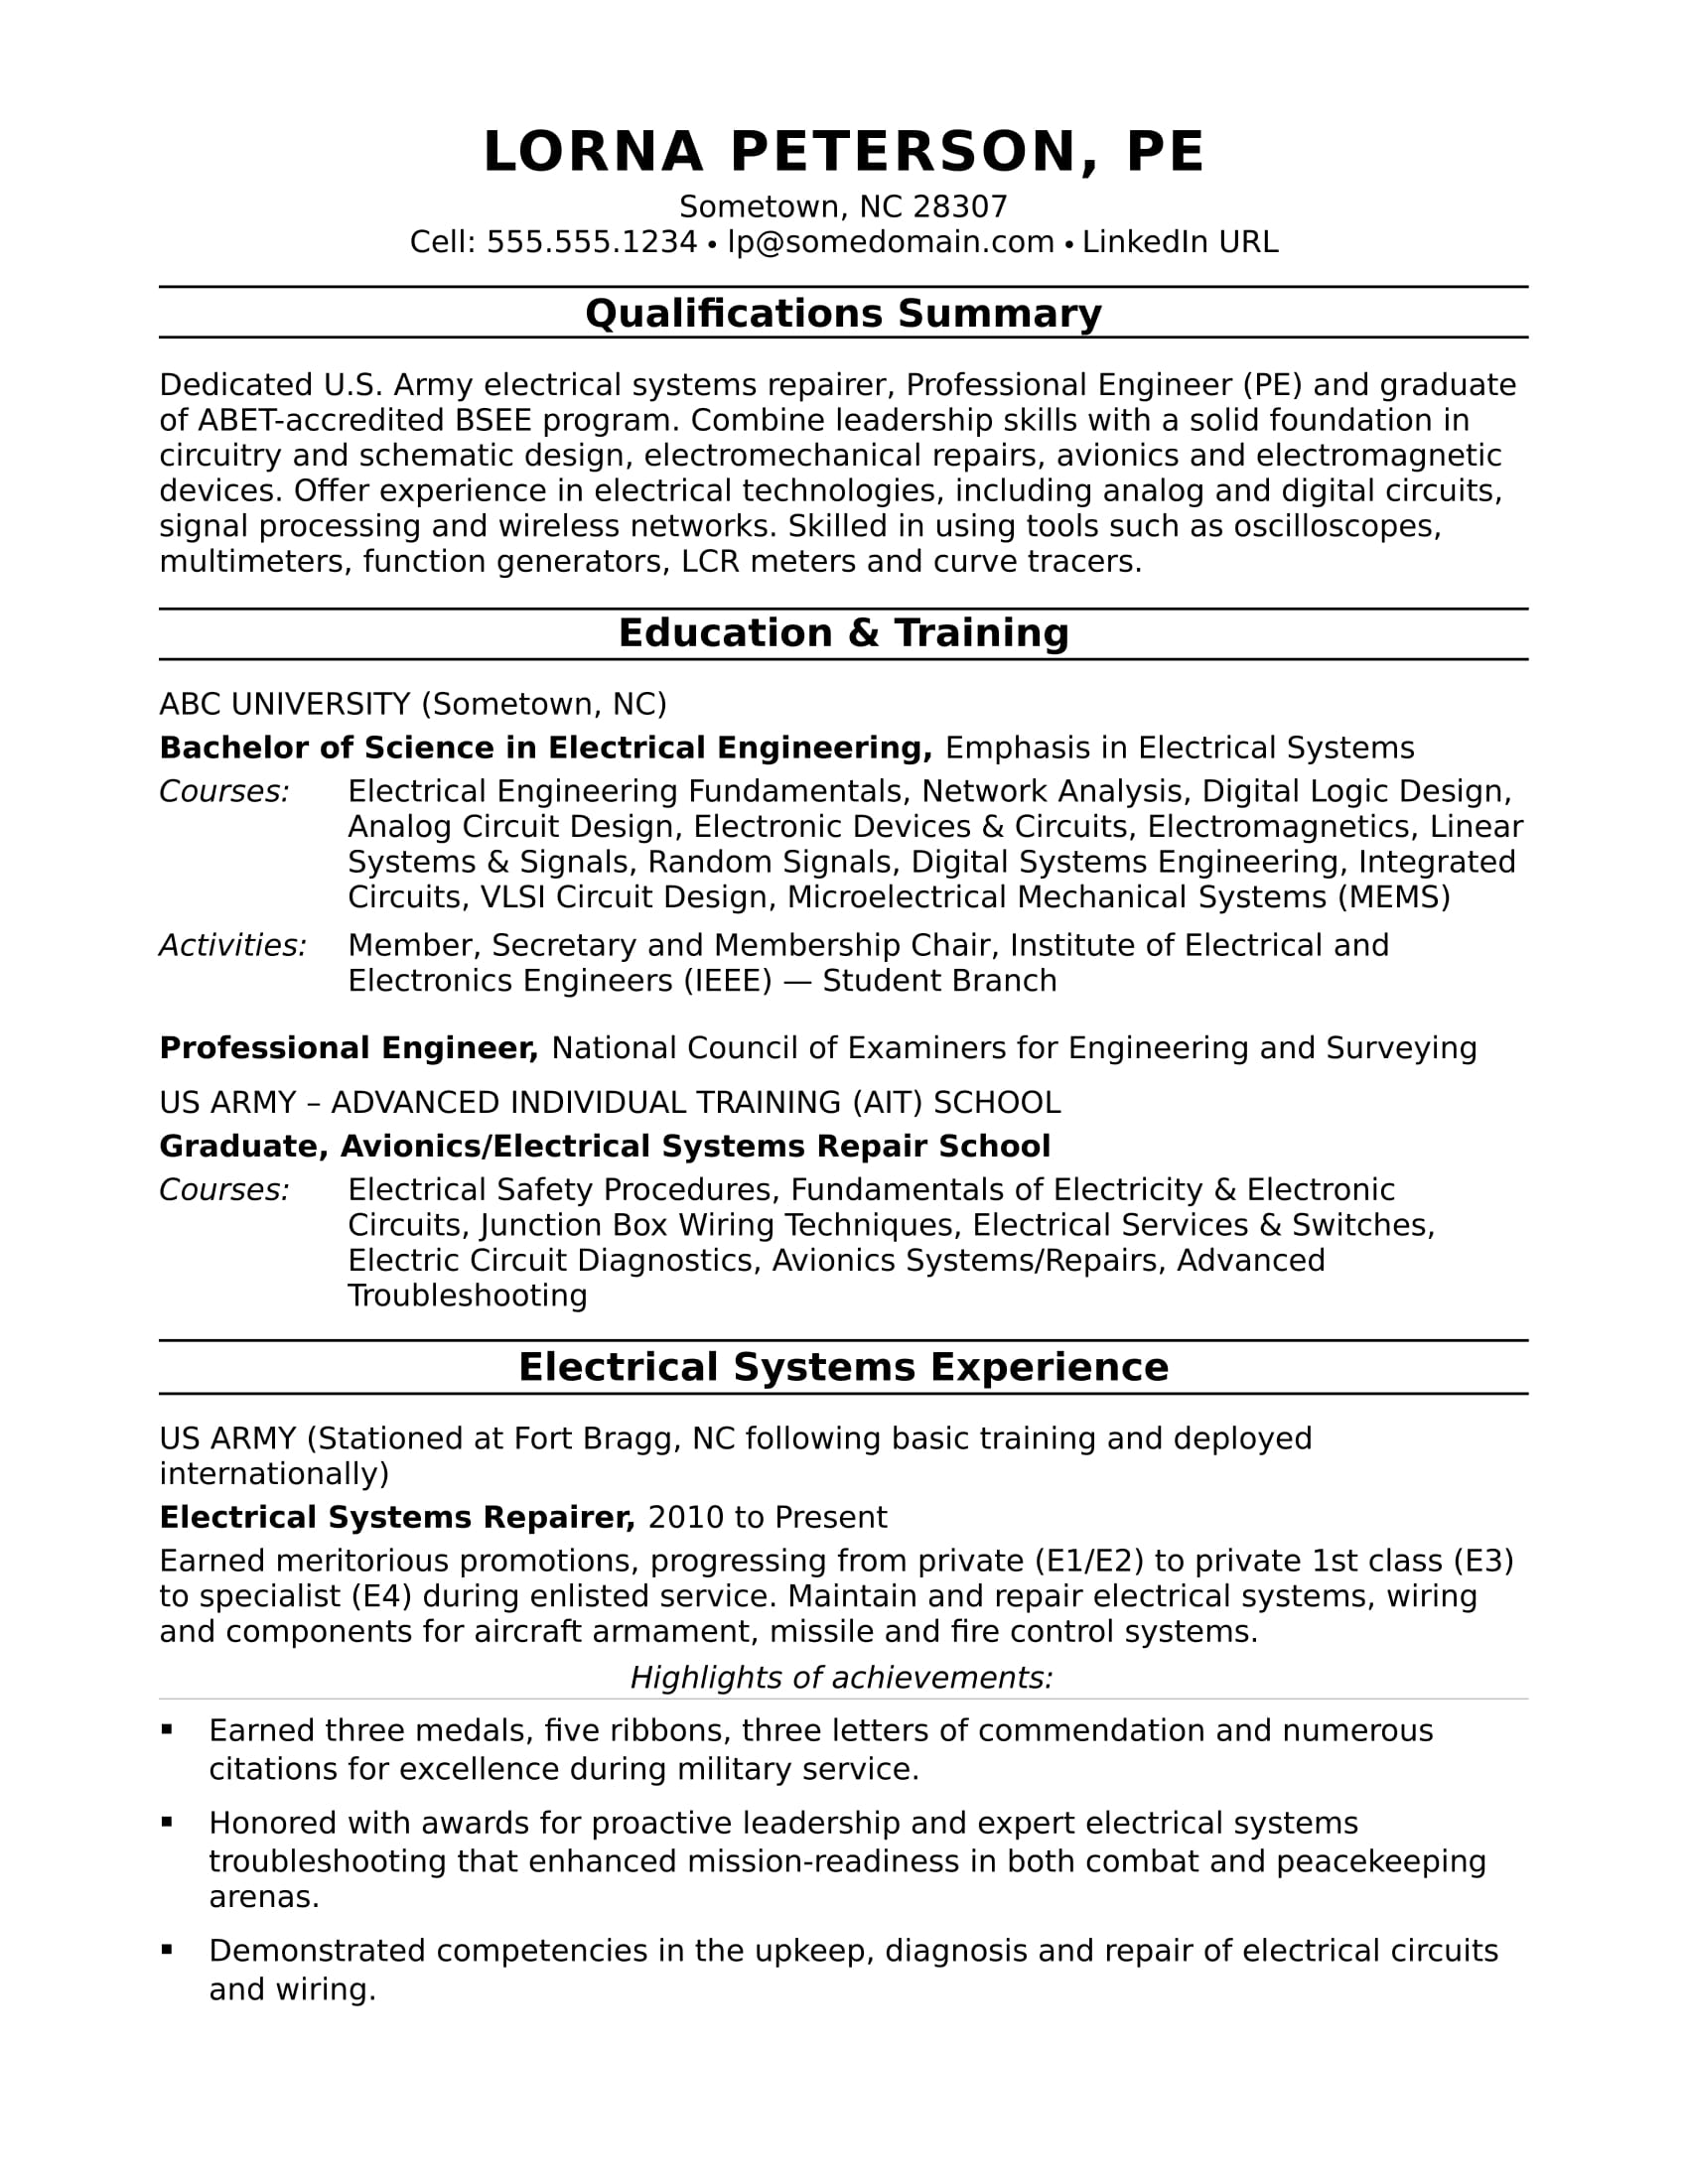 Circuit Design Engineer Cover Letter Sample Resume For A Midlevel Electrical Engineer Monster